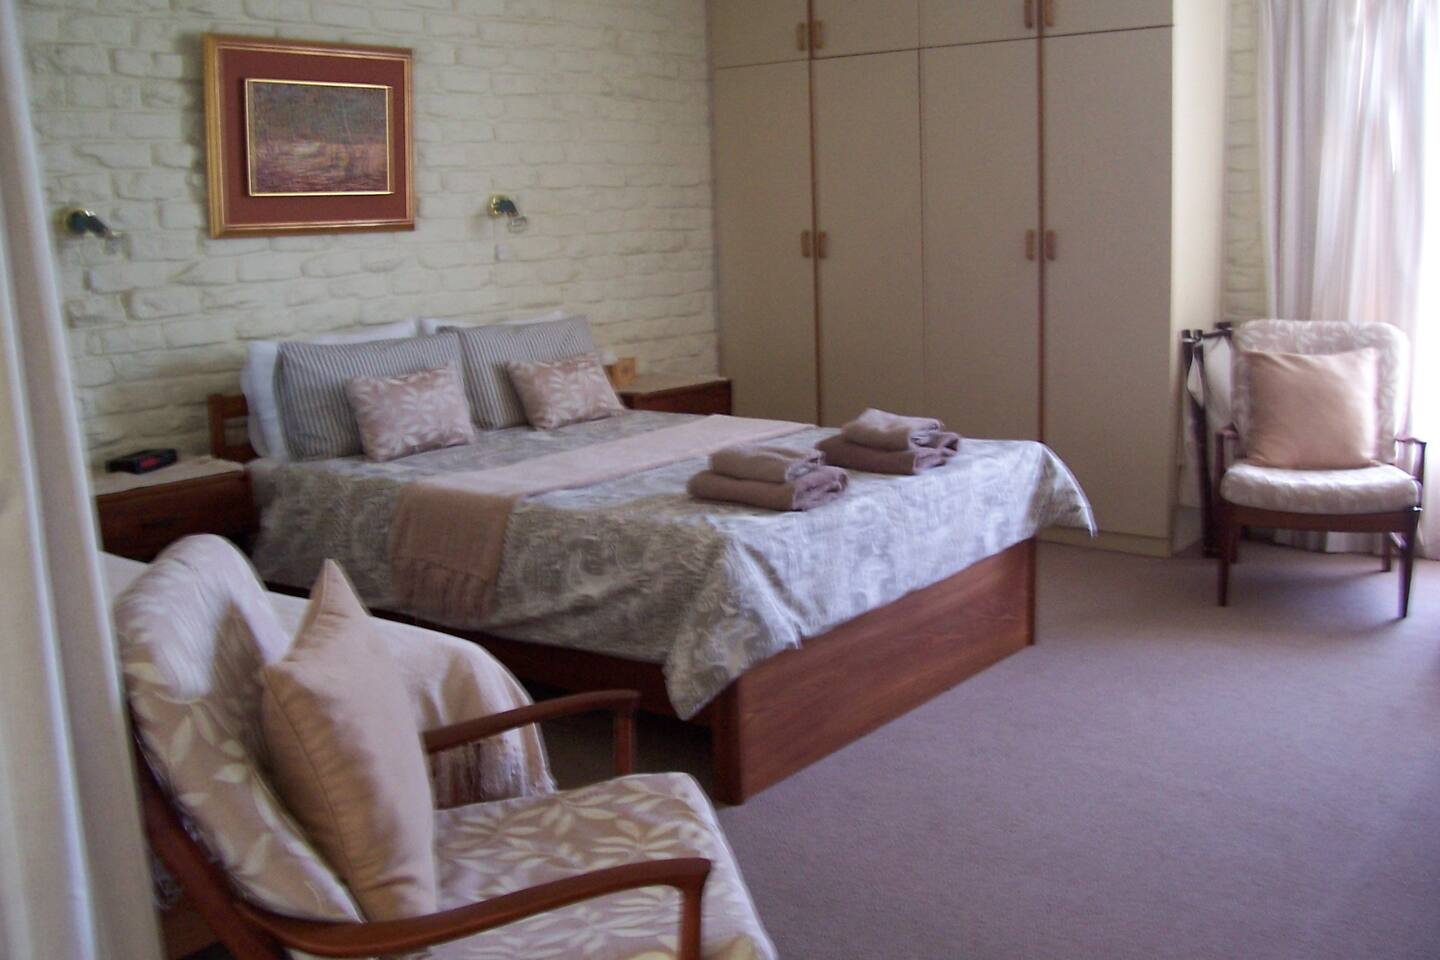 Bedroom with double bed and a single bed